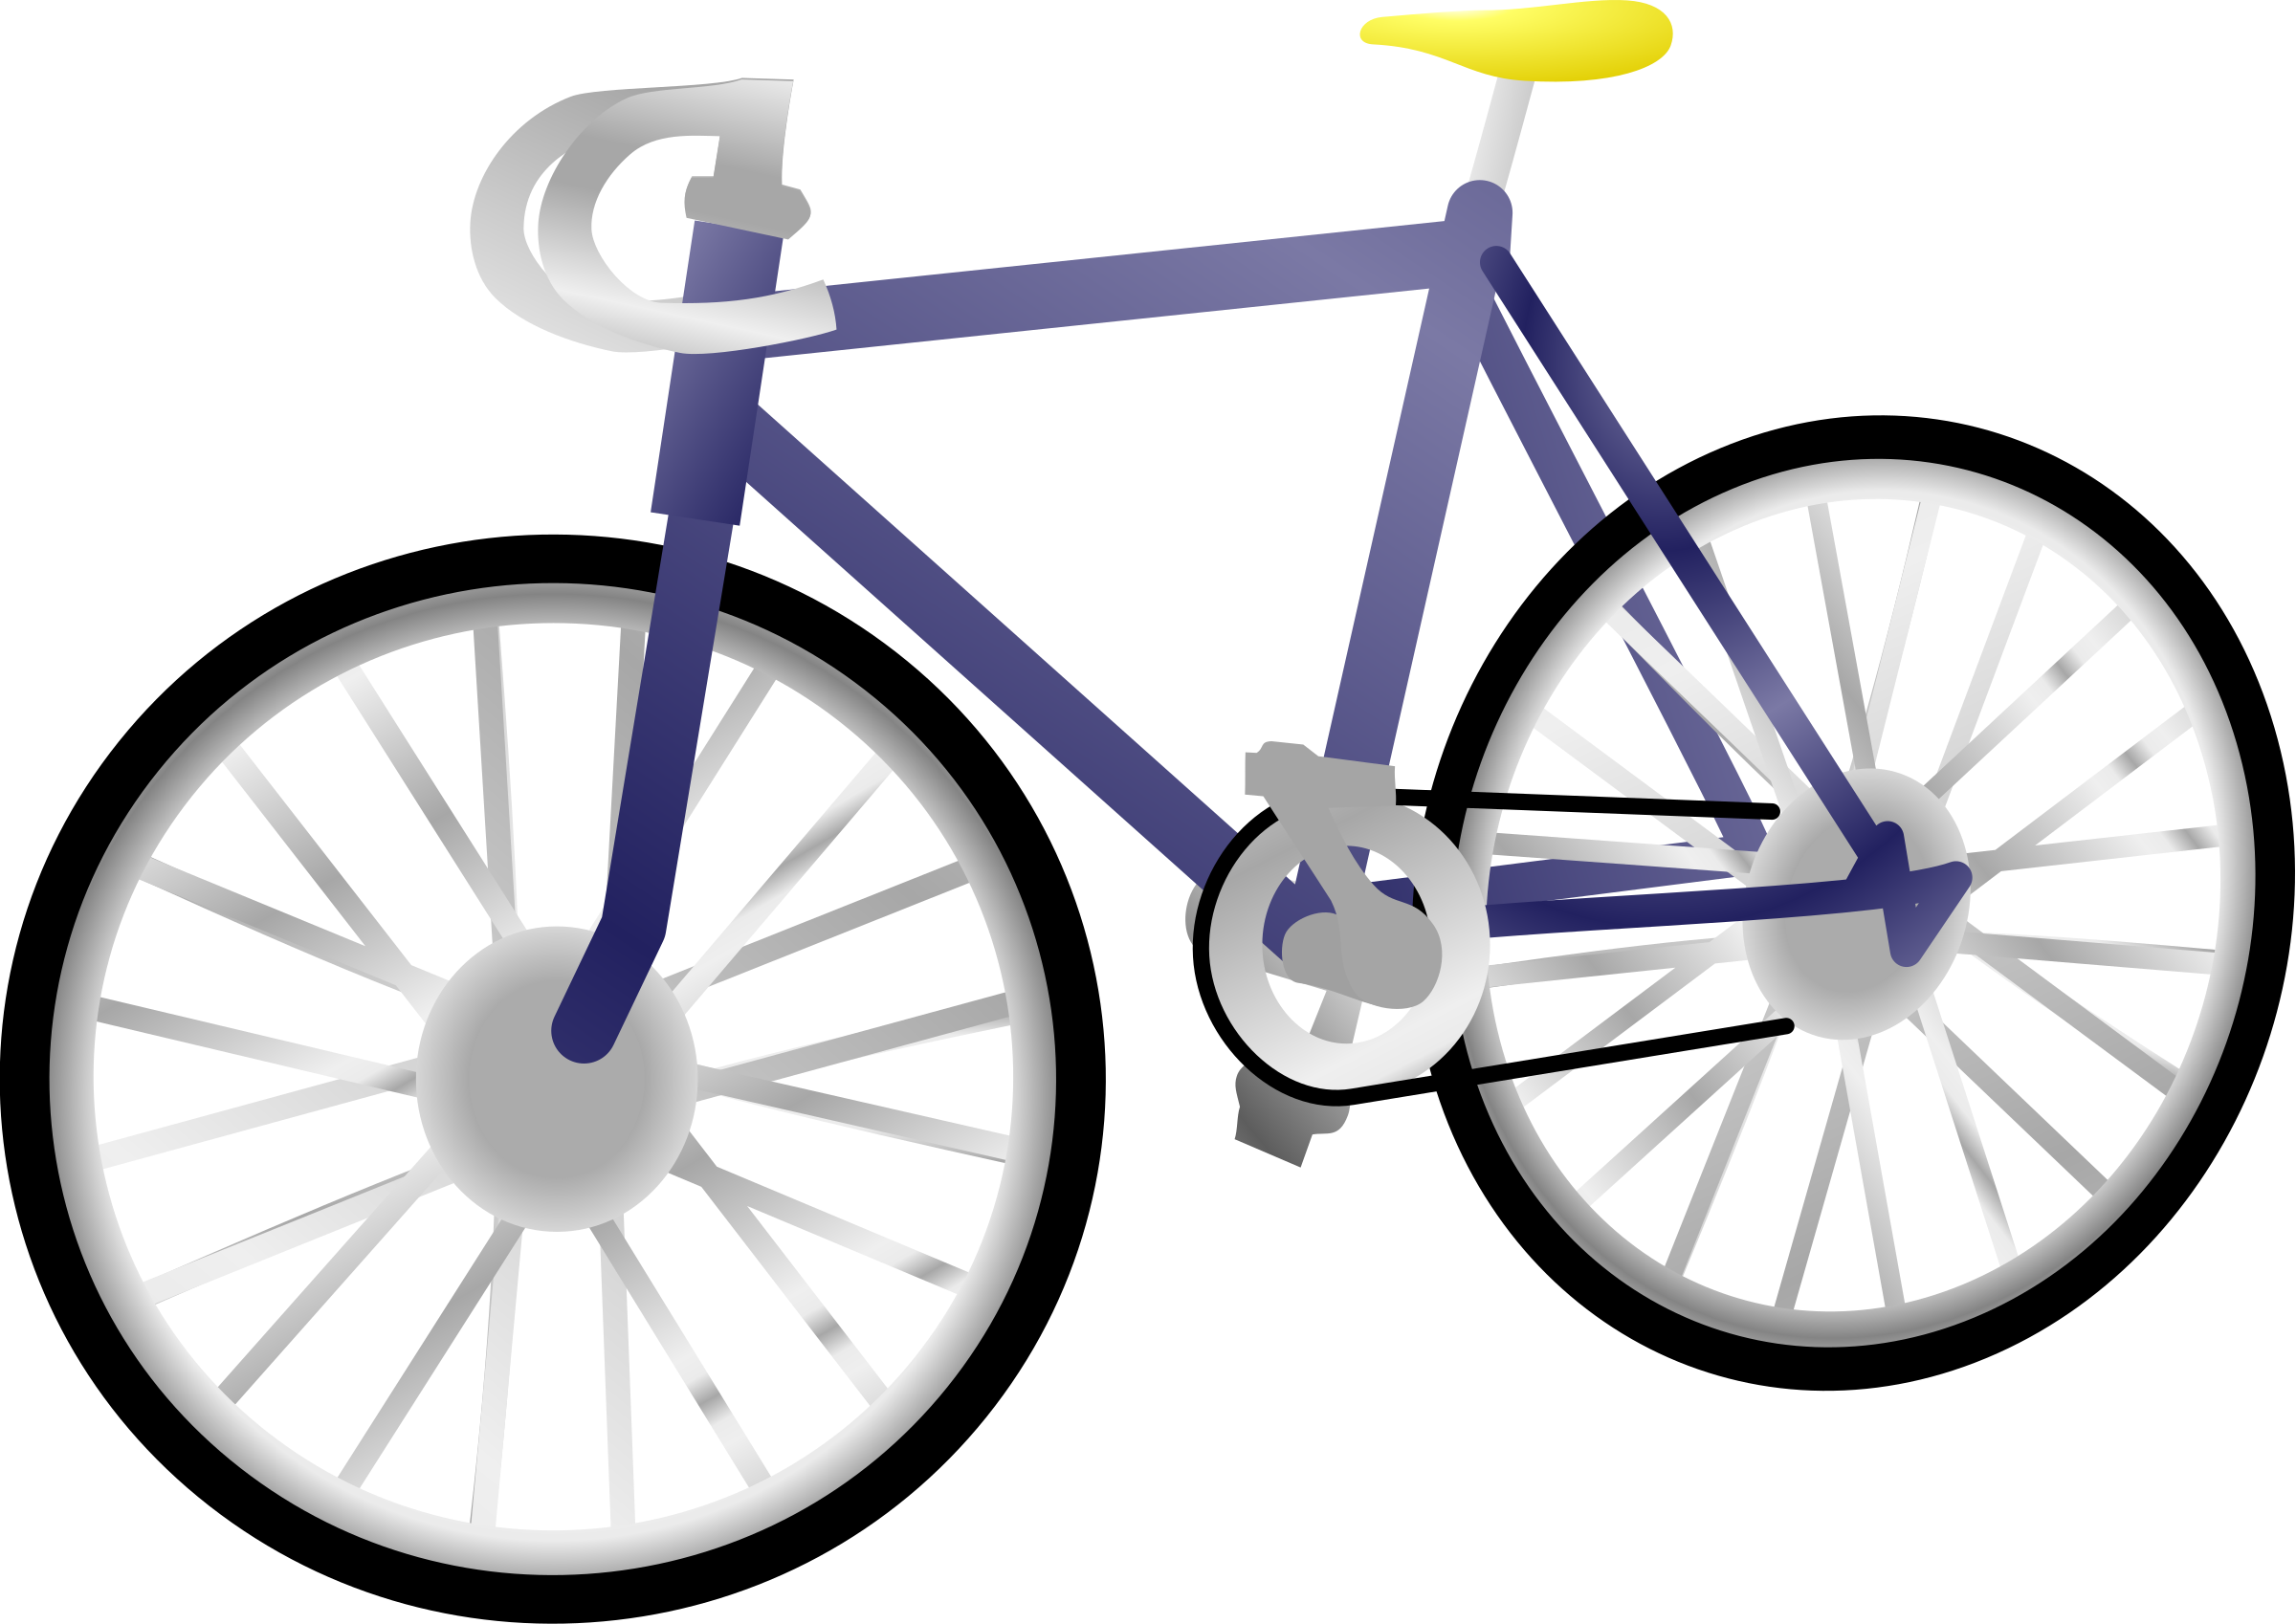 Cycle clipart vehicle. Single speed bicycle big